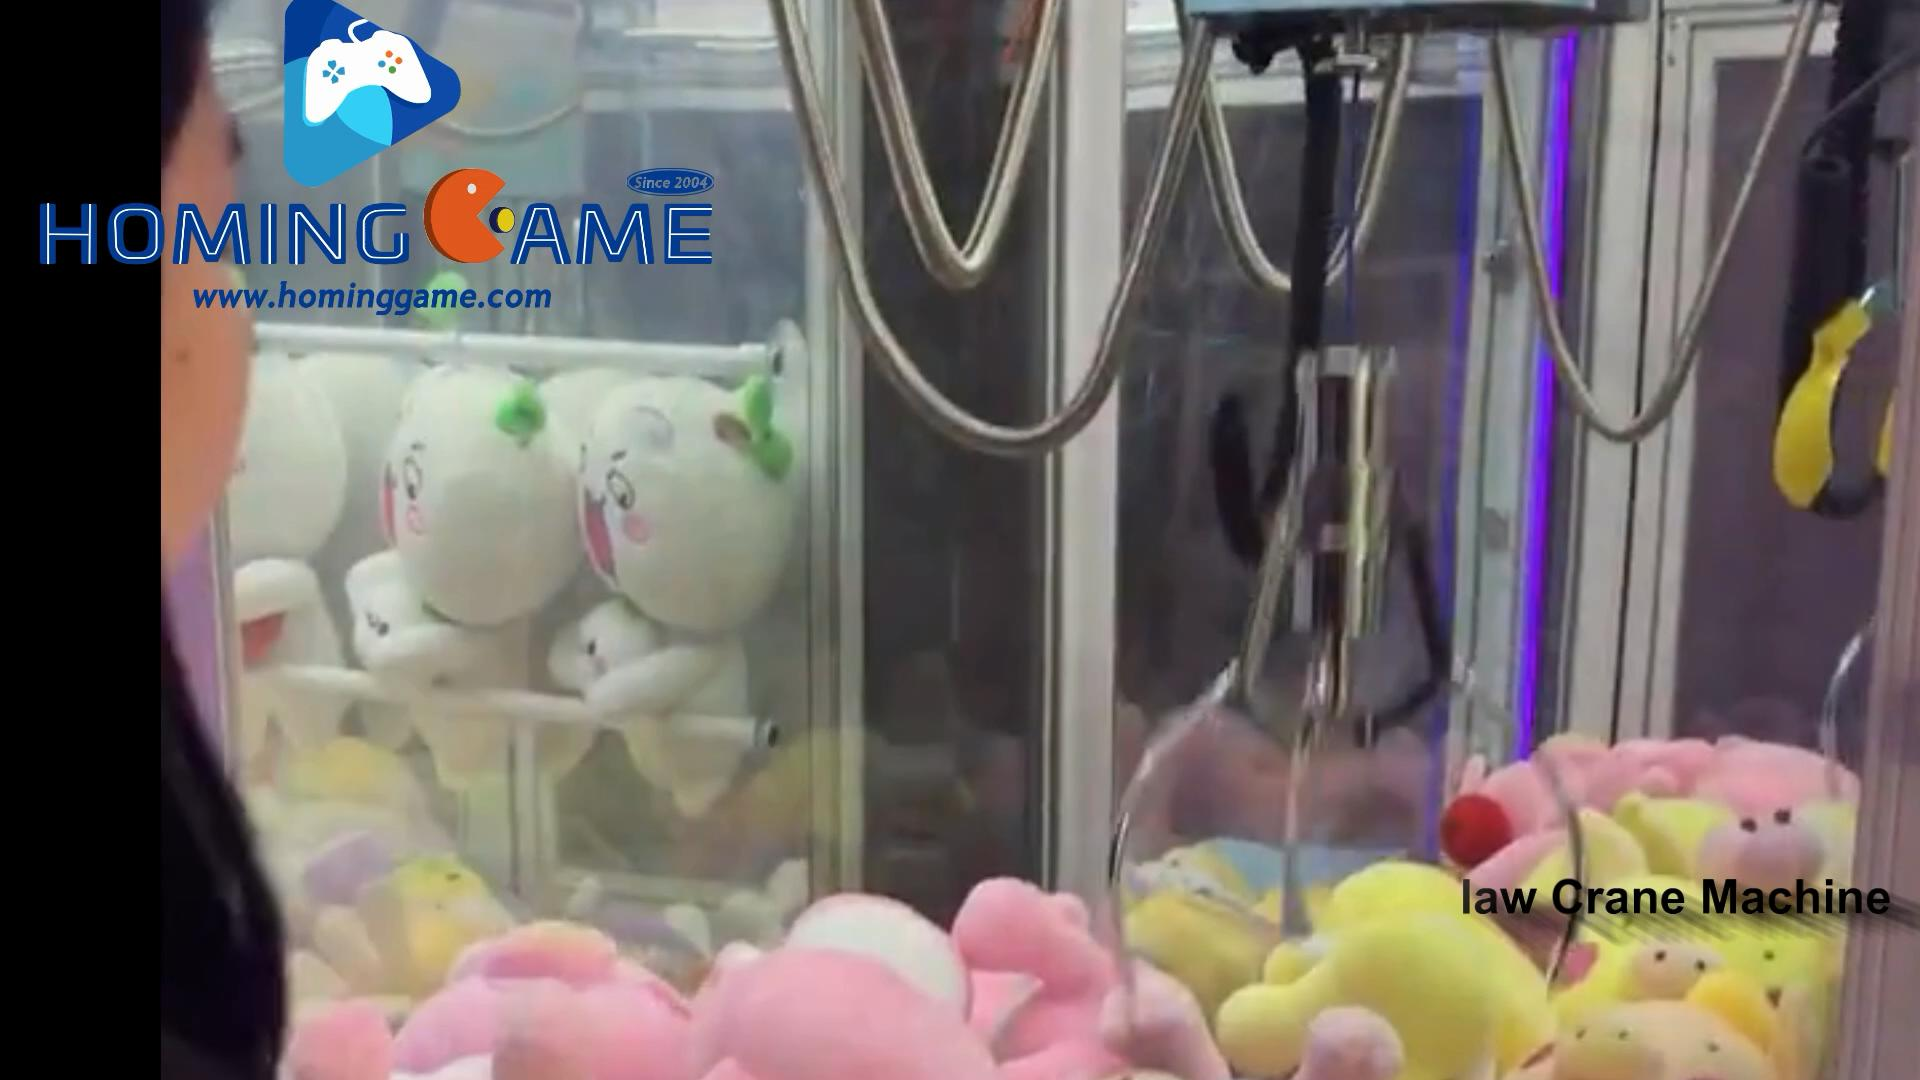 double claw crane machine,double claw crane game machine,double claw crane game machine,double claw prize game,claw machine,happy house crane machine,happy house claw machine,game machine,game machine price,game machine for sale,game machine supplier,game machine manufacturer,toy story crane machine,game+machine,toy+story+crane+machine,crane+machine,claw machine,claw prize machine,claw game machine,prize vending machine,vending machine,luxury crane machine,luxury led crane machine,game machines,arcade game machine,coin operated game machine,indoor game machine,electrical game machine,amusement machine,amusement park game equipment,game equipment,slot game machine,vending game,prize vending game machine,redemption game machine,key master game machine,barber cut prize game machine,winner cube prize game machine,key push prize game machine,hominggame,www.gametube.hk,gametube.hk,entertainment game machine,amusement park game equipments,catch plush prize game machine,catcher crane machine,coin operated crane machine,coin operated claw machine